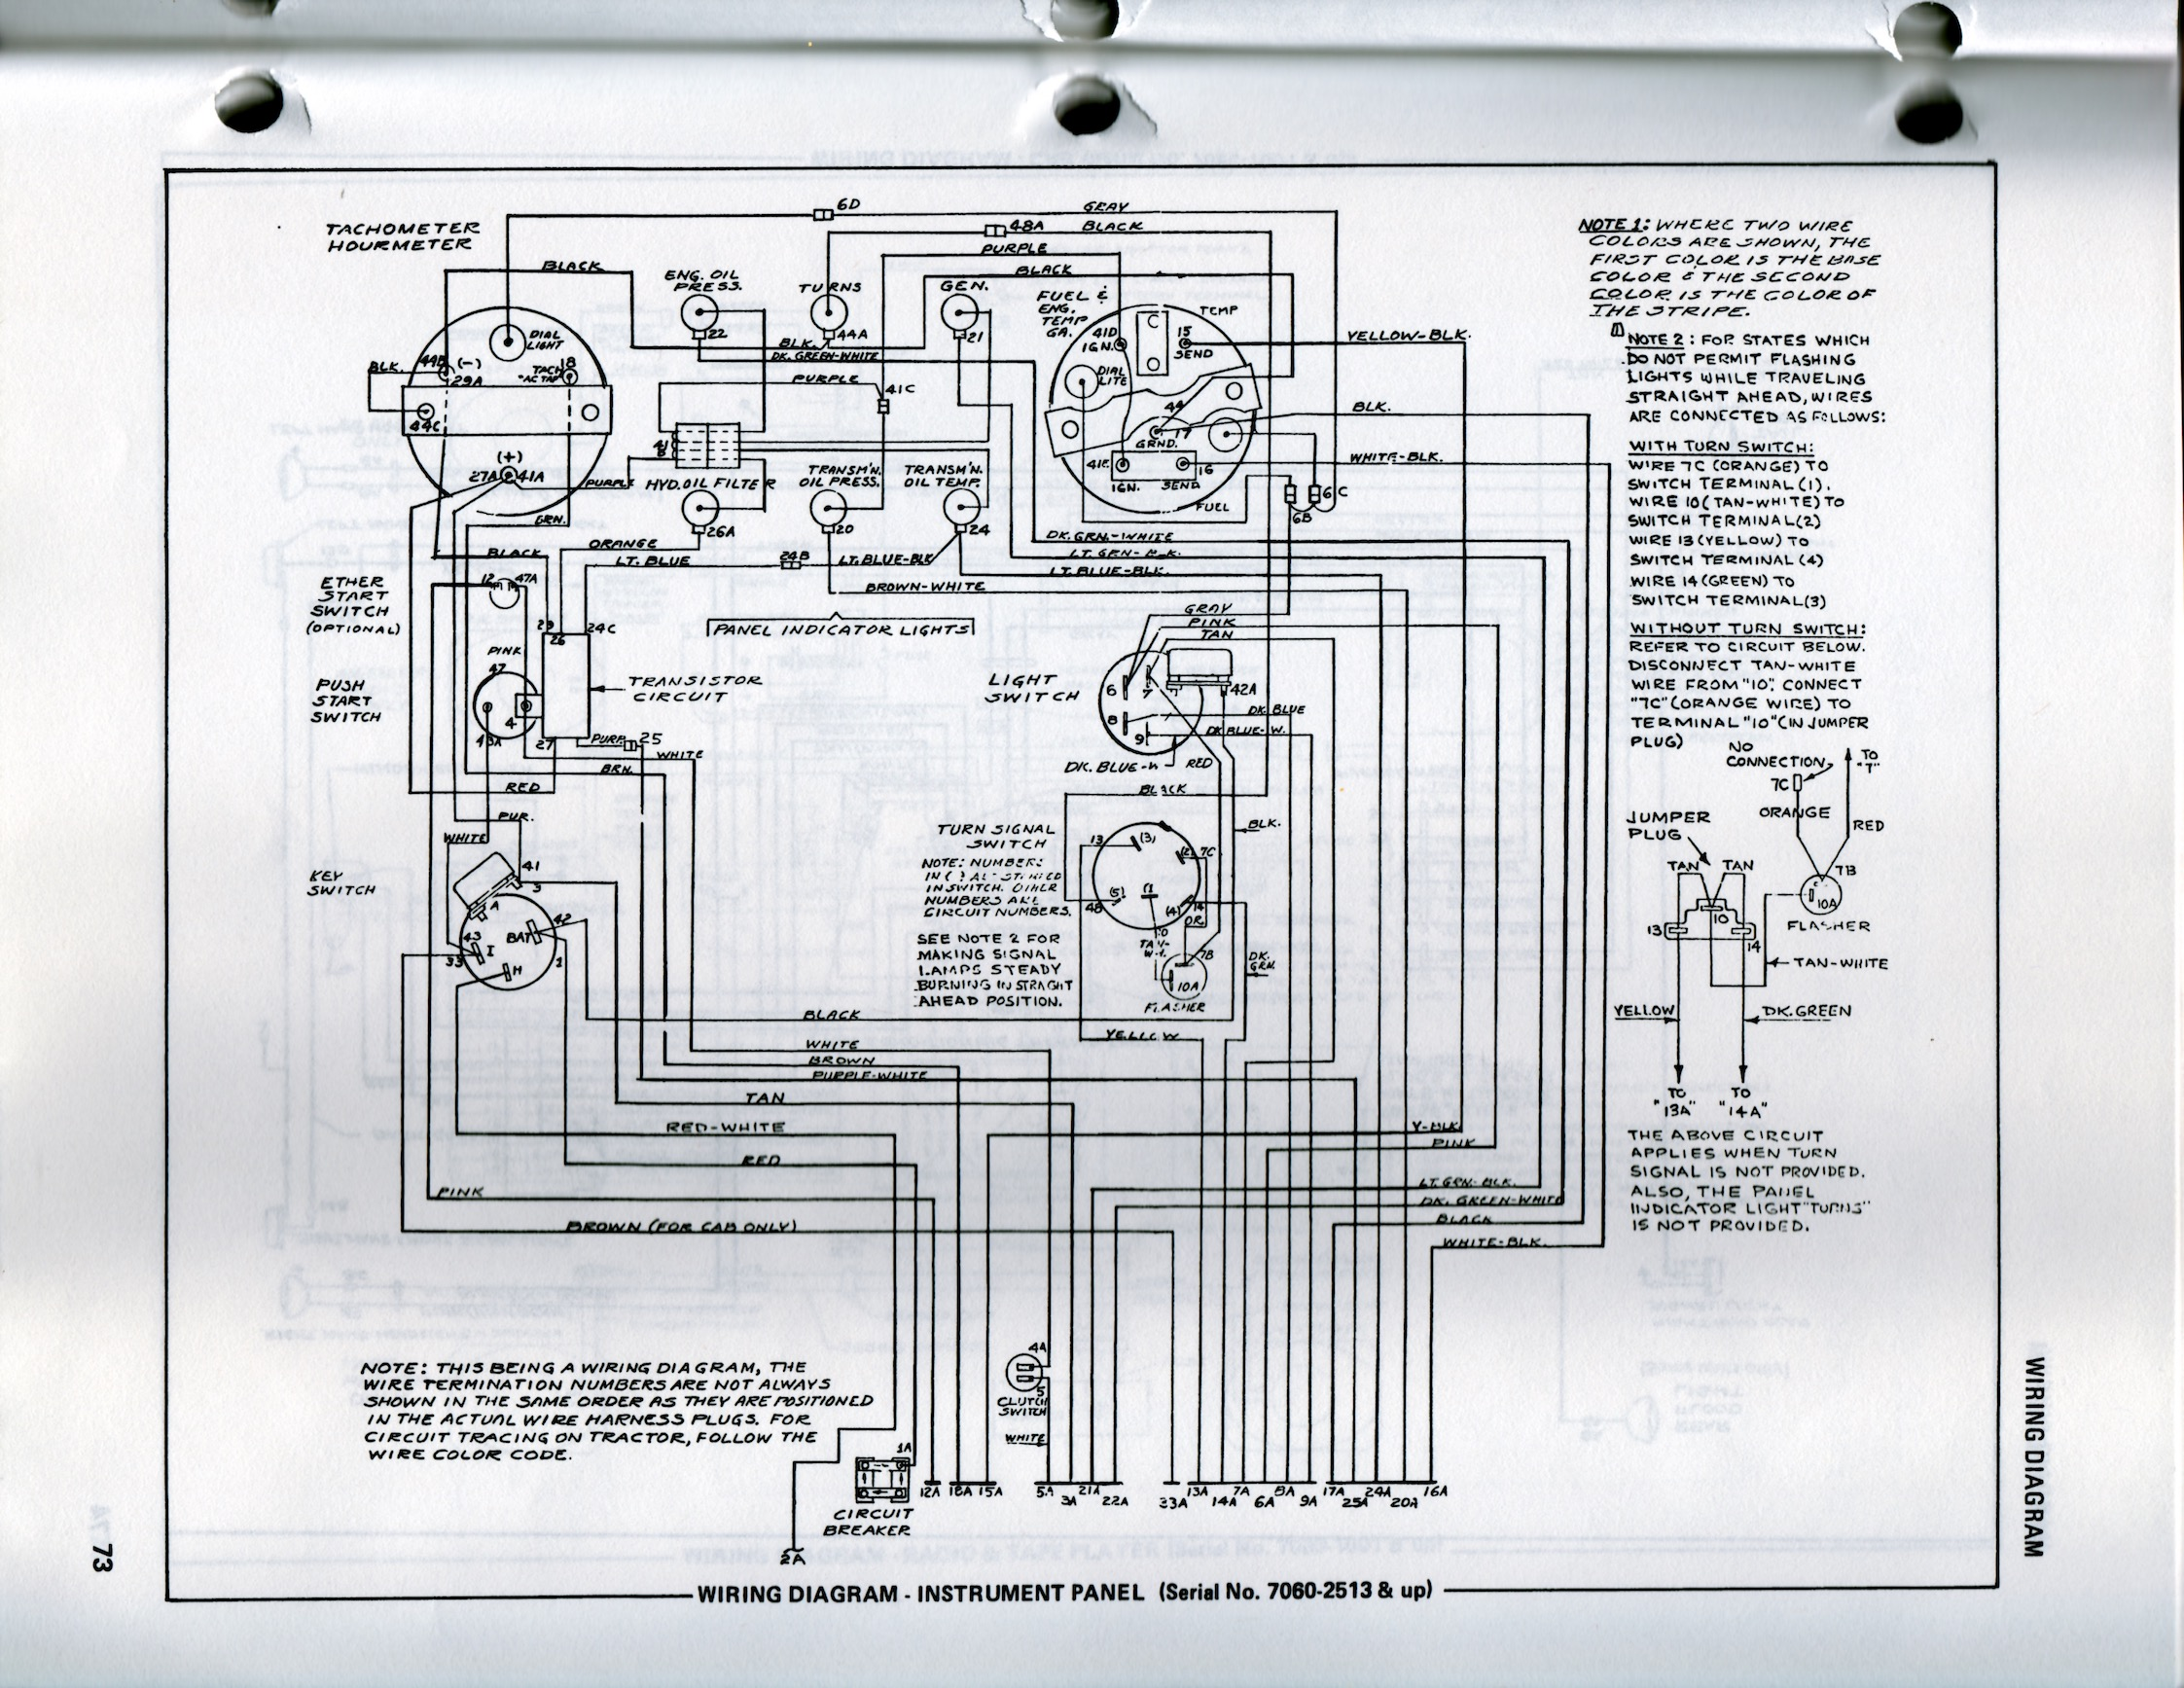 Allis 7060 Wiring Diagram Schematic Allischalmers Forum Alternator Circuit Typical Here Is 2 Of The Different Alternators And Key Switch